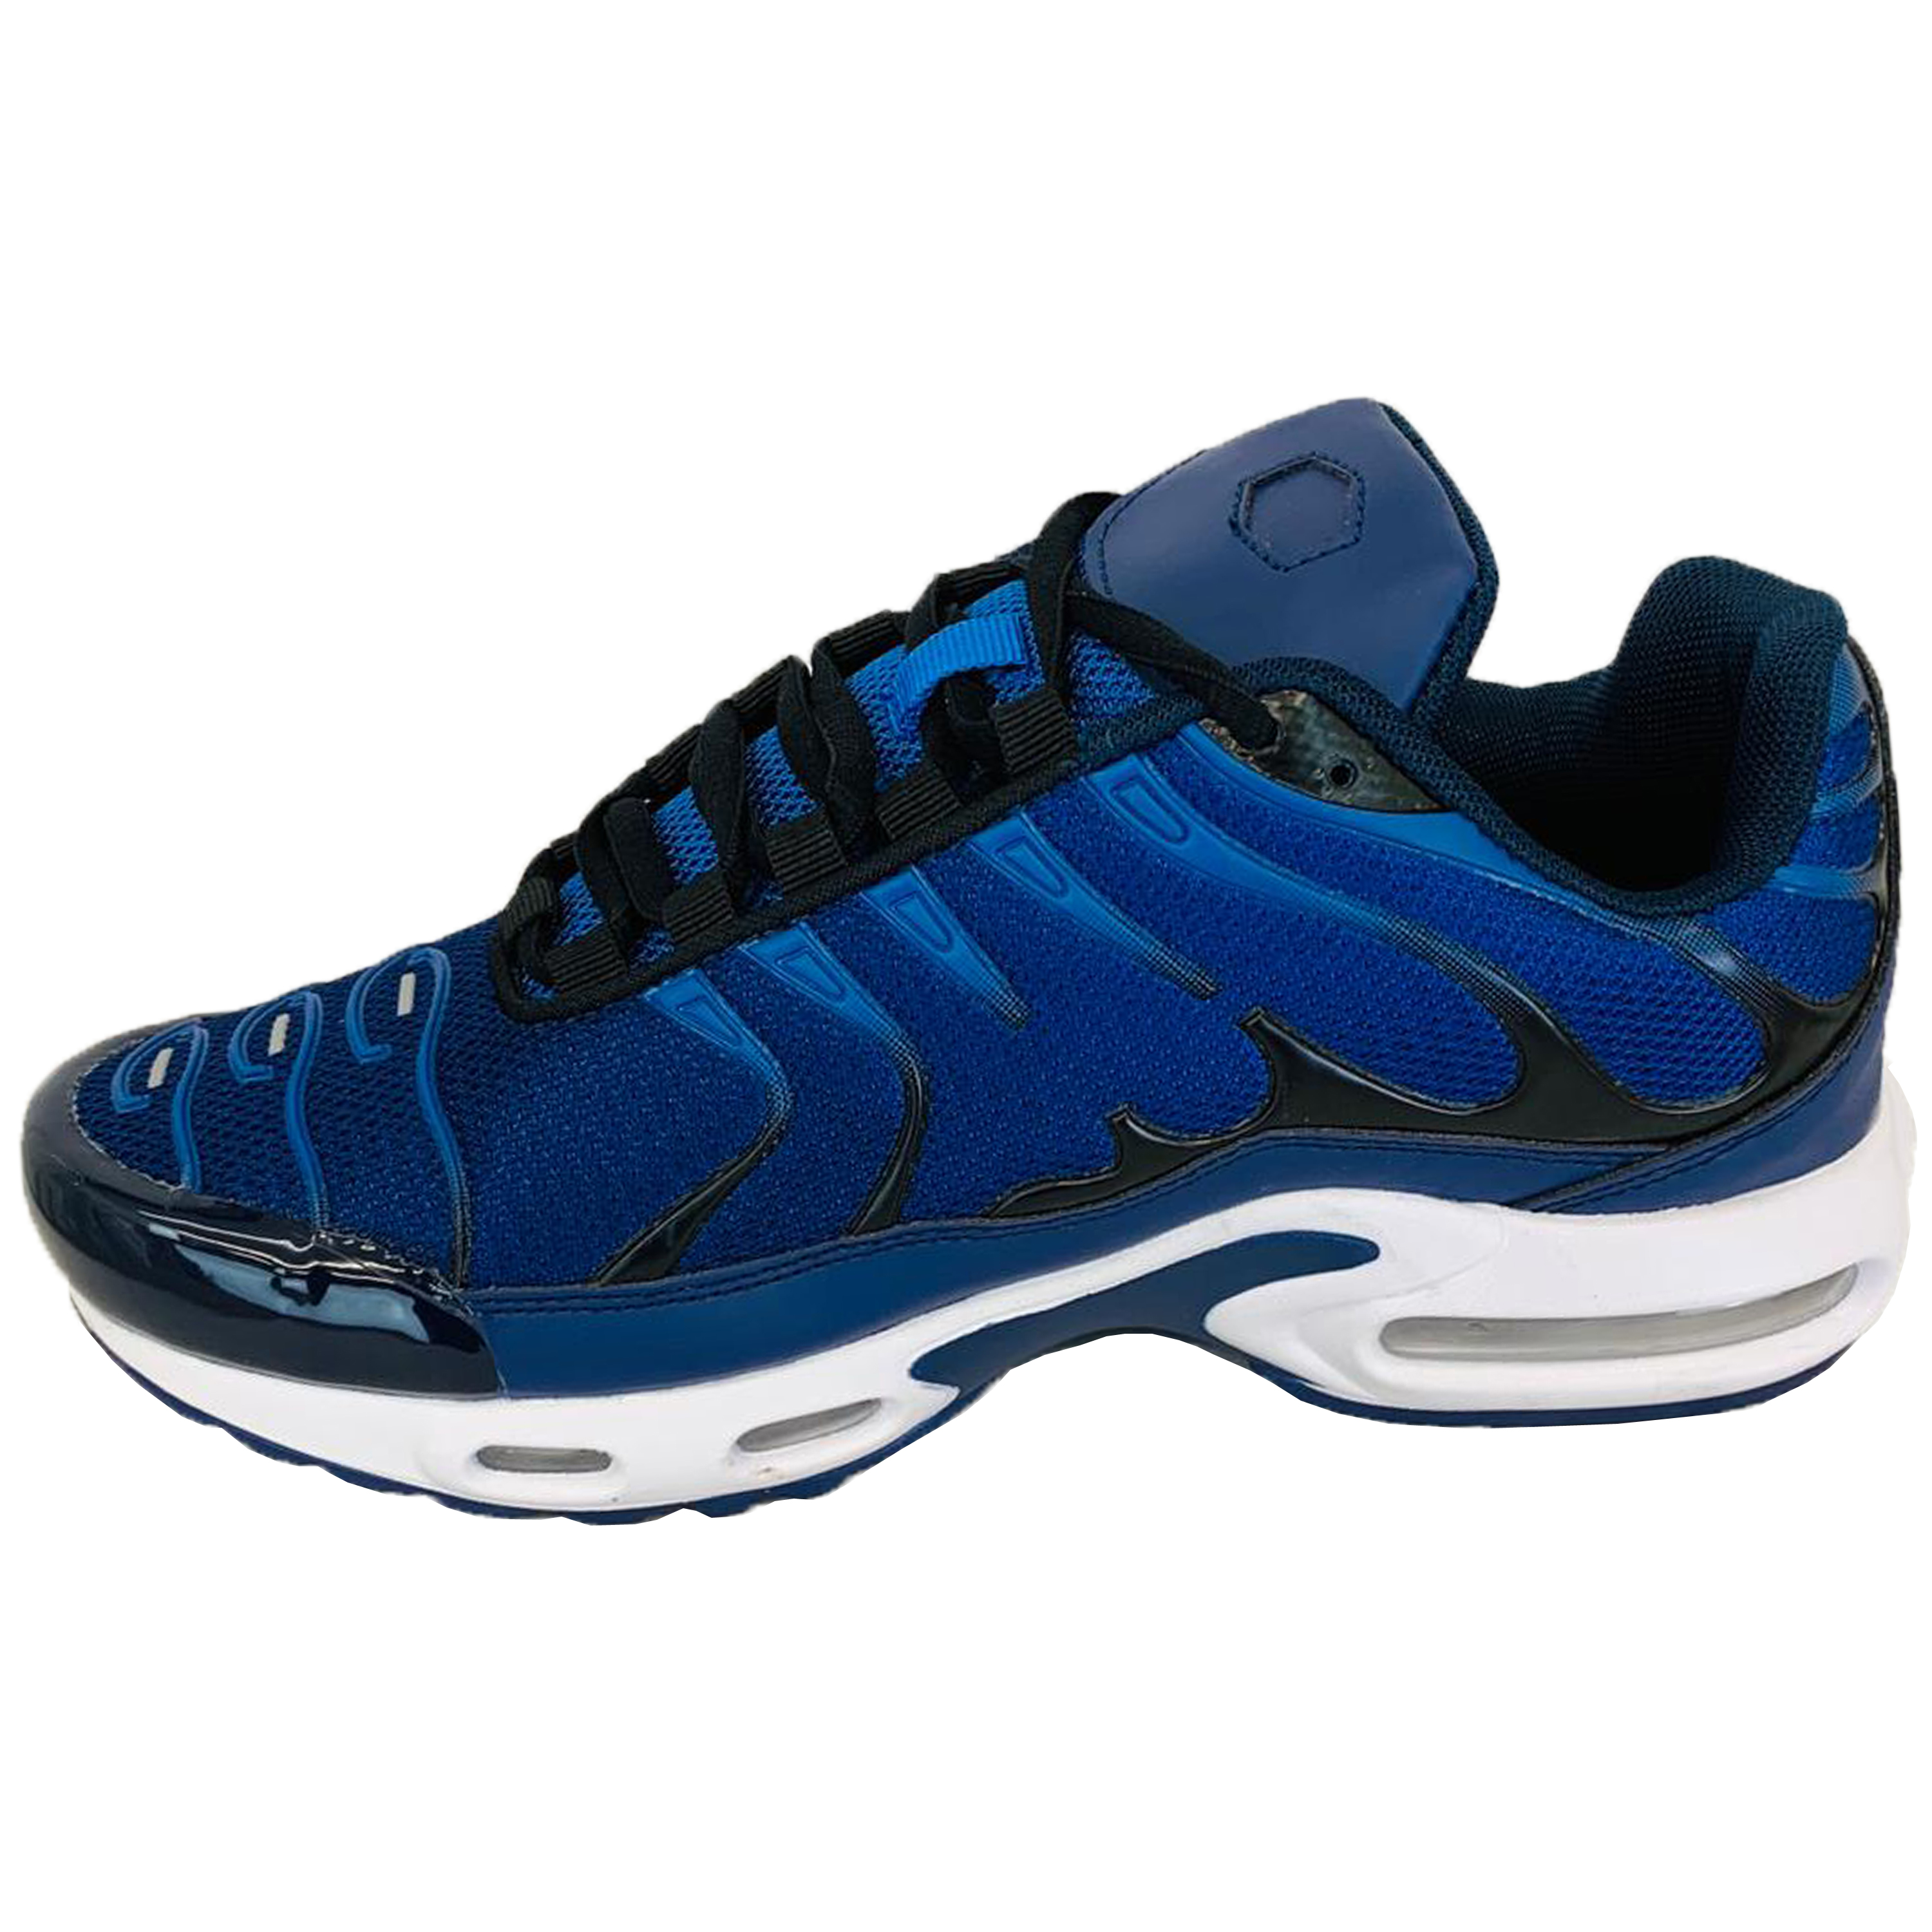 Mens-Bubble-Trainers-Lace-Up-Running-Shoes-Sneakers-Sports-Jogging-Fitness-Gym thumbnail 21